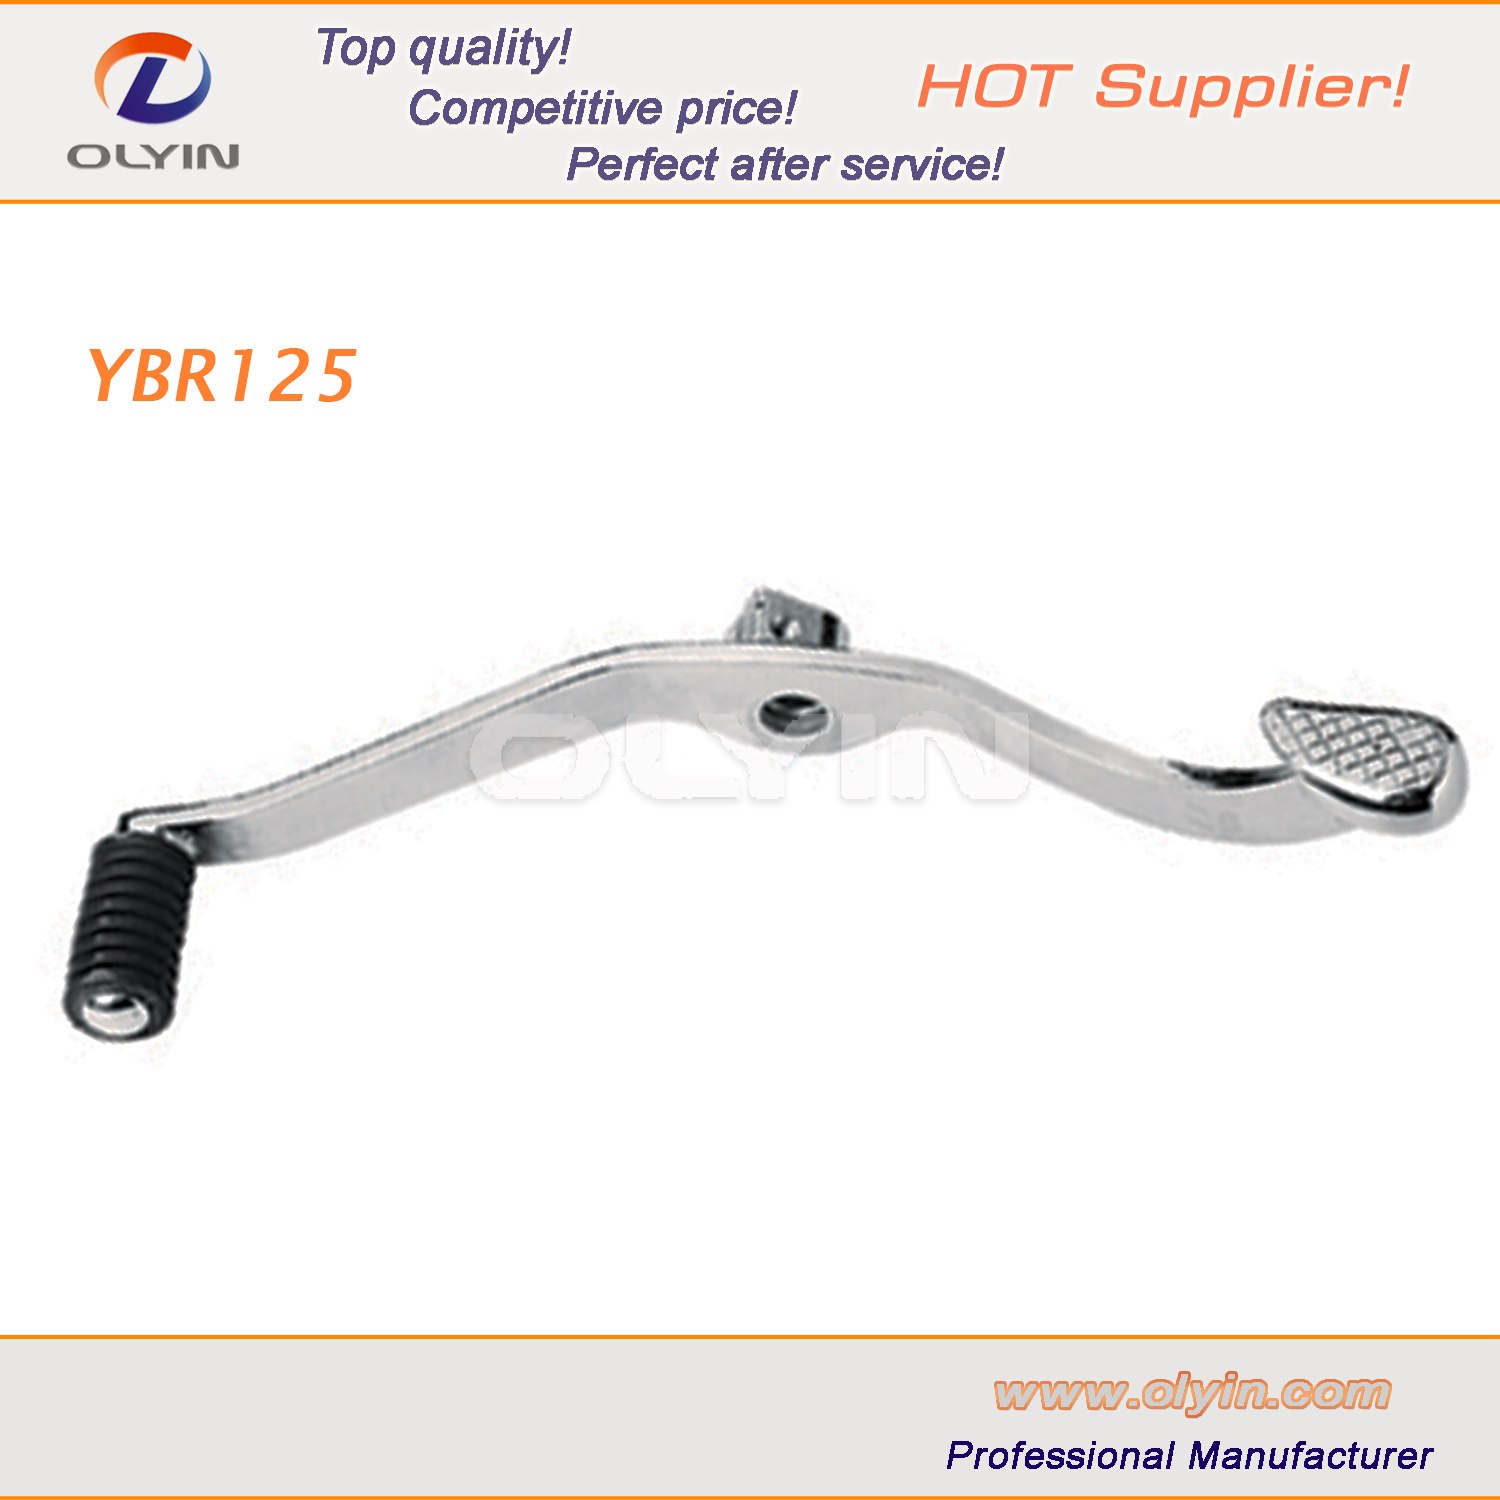 [Hot Item] YAMAHA Motorcycle Brake Pedal, Ybr125 Motorcycle Gear  Lever/Pedal for Motor Parts